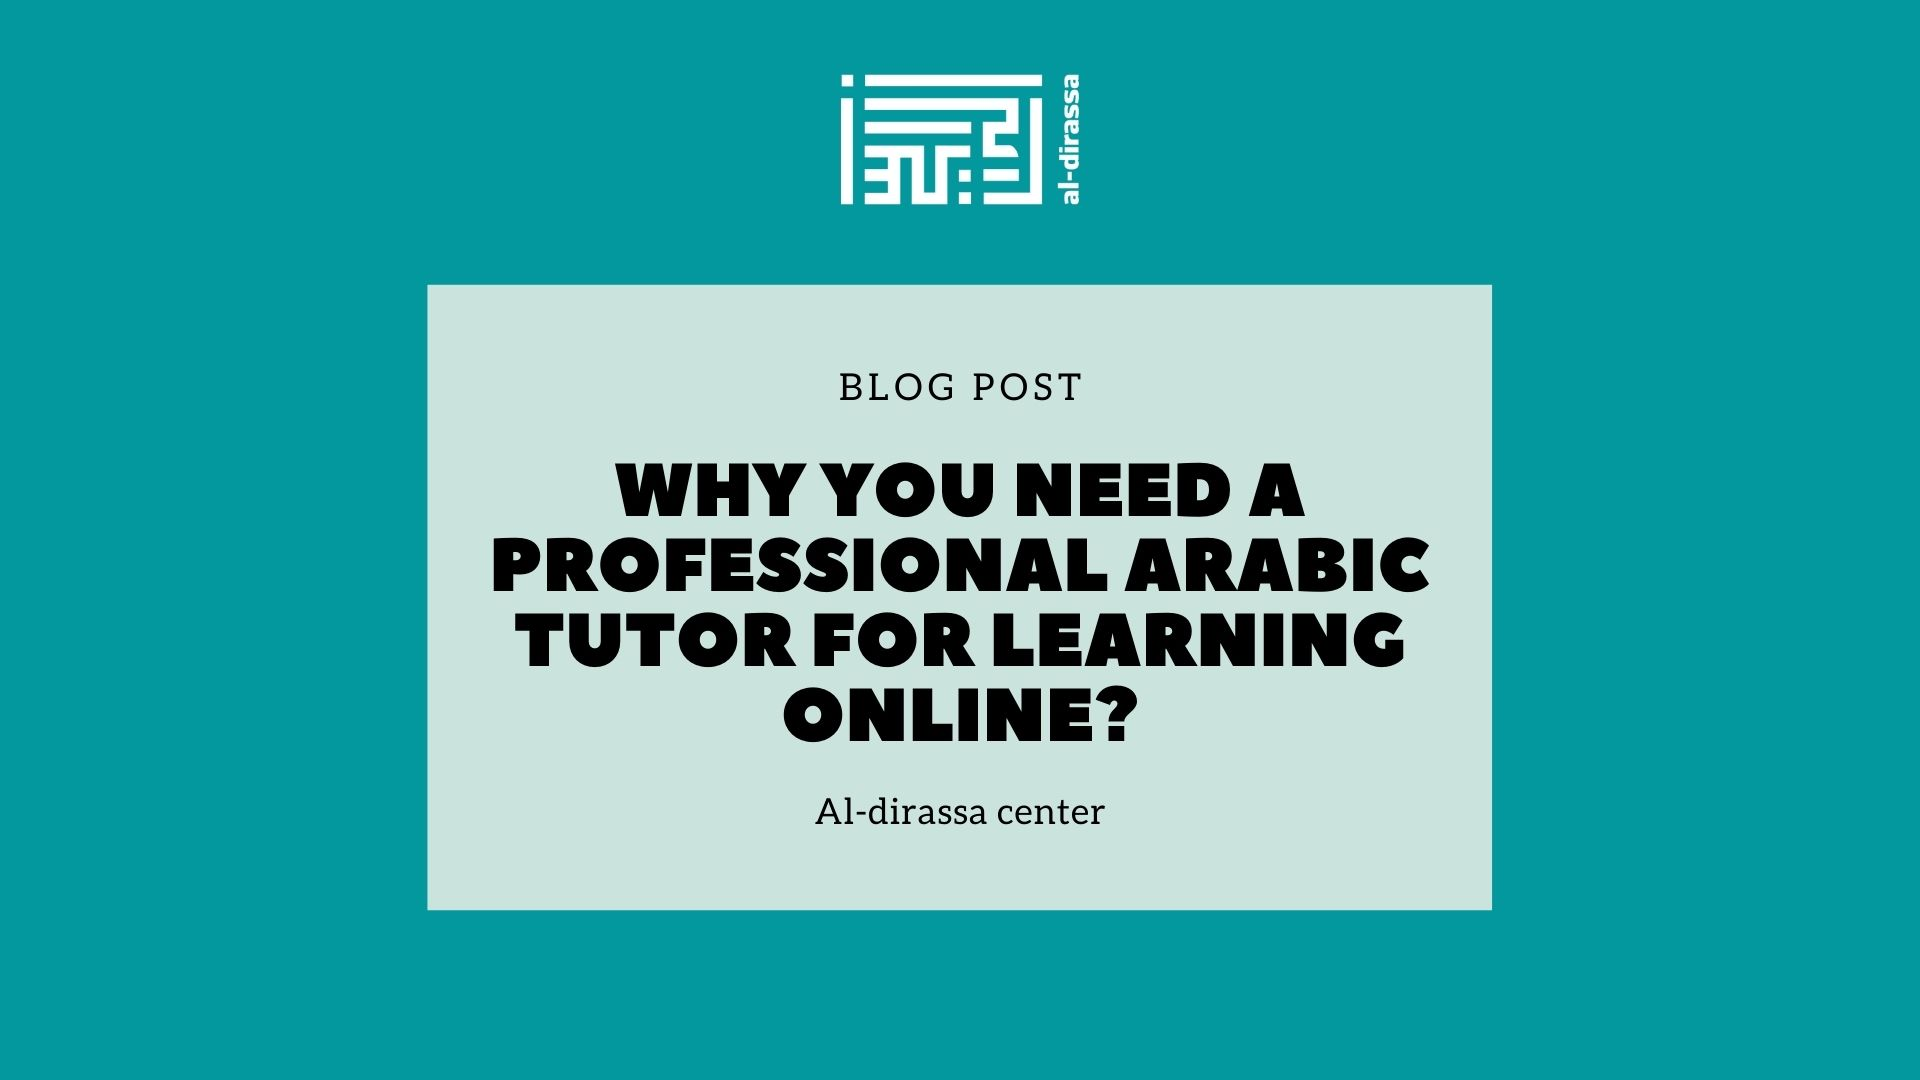 Why You Need a Professional Arabic Tutor for Learning Online